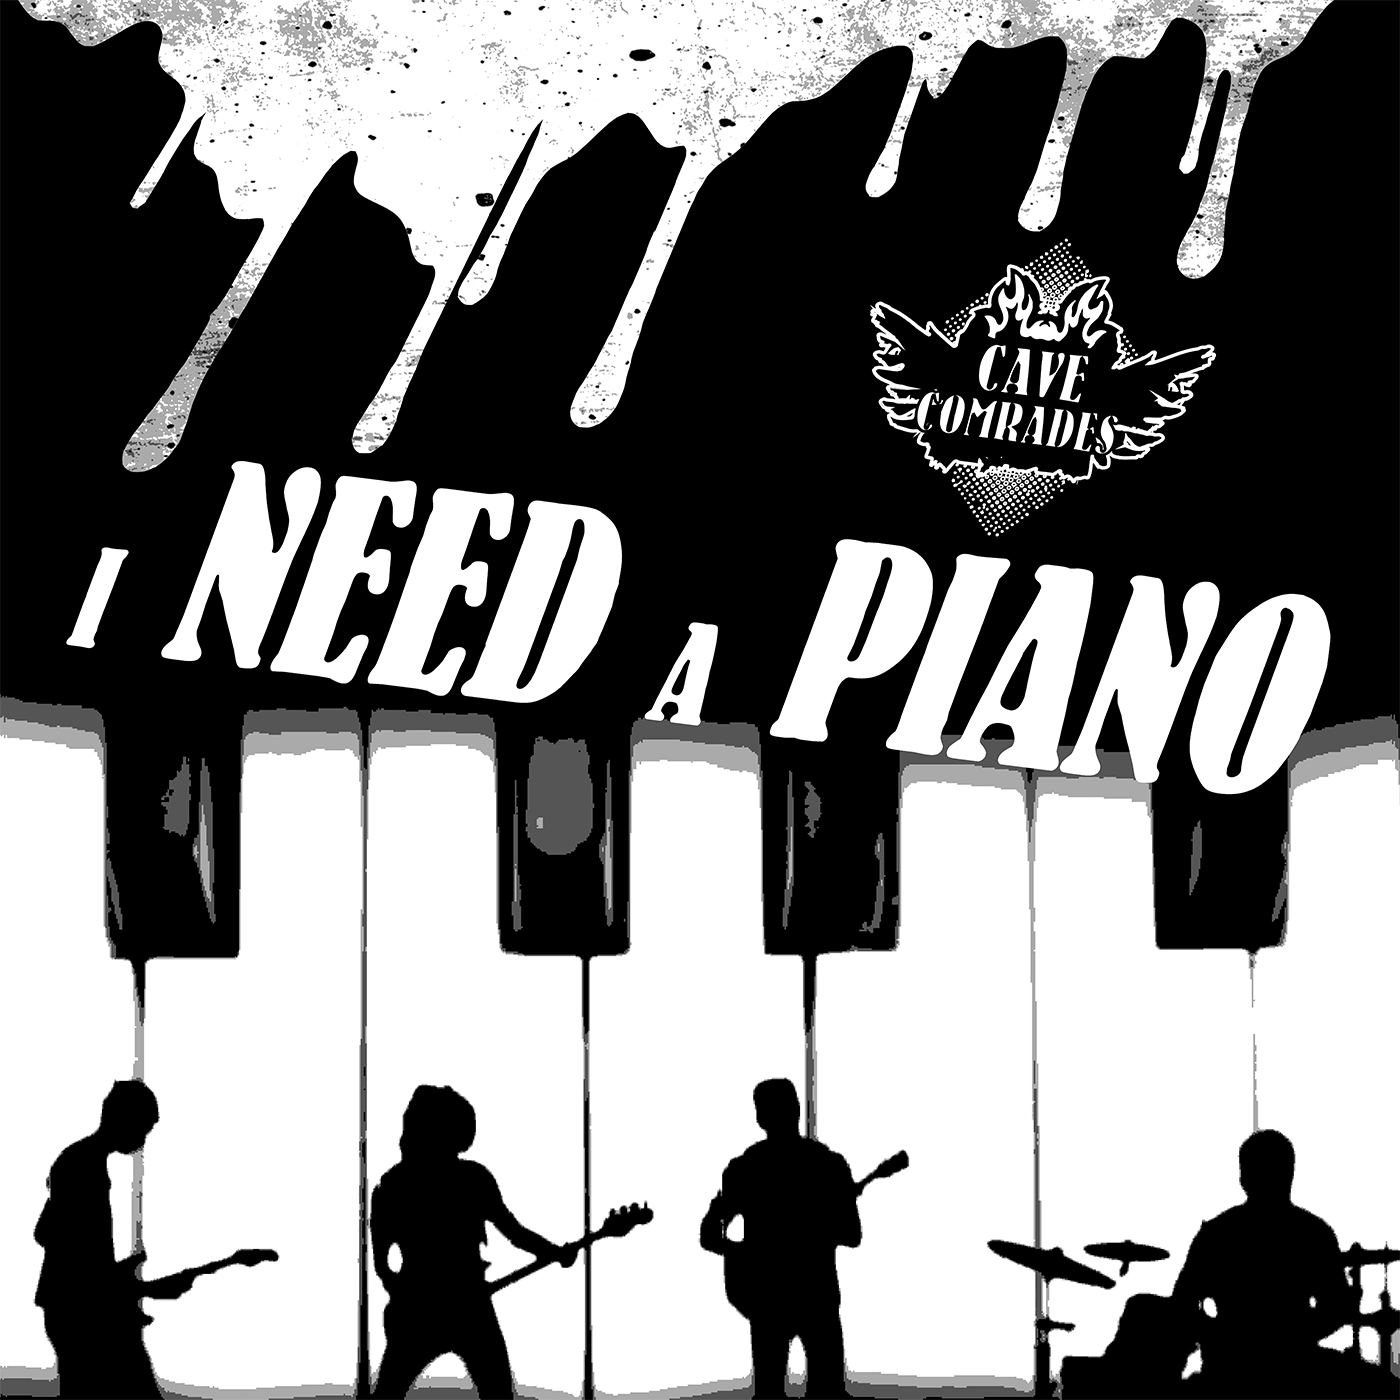 "<a href=""https://open.spotify.com/album/44YyfQTABqvOicyK8aolzZ""target=""_blank"">I Need a Piano</a>"